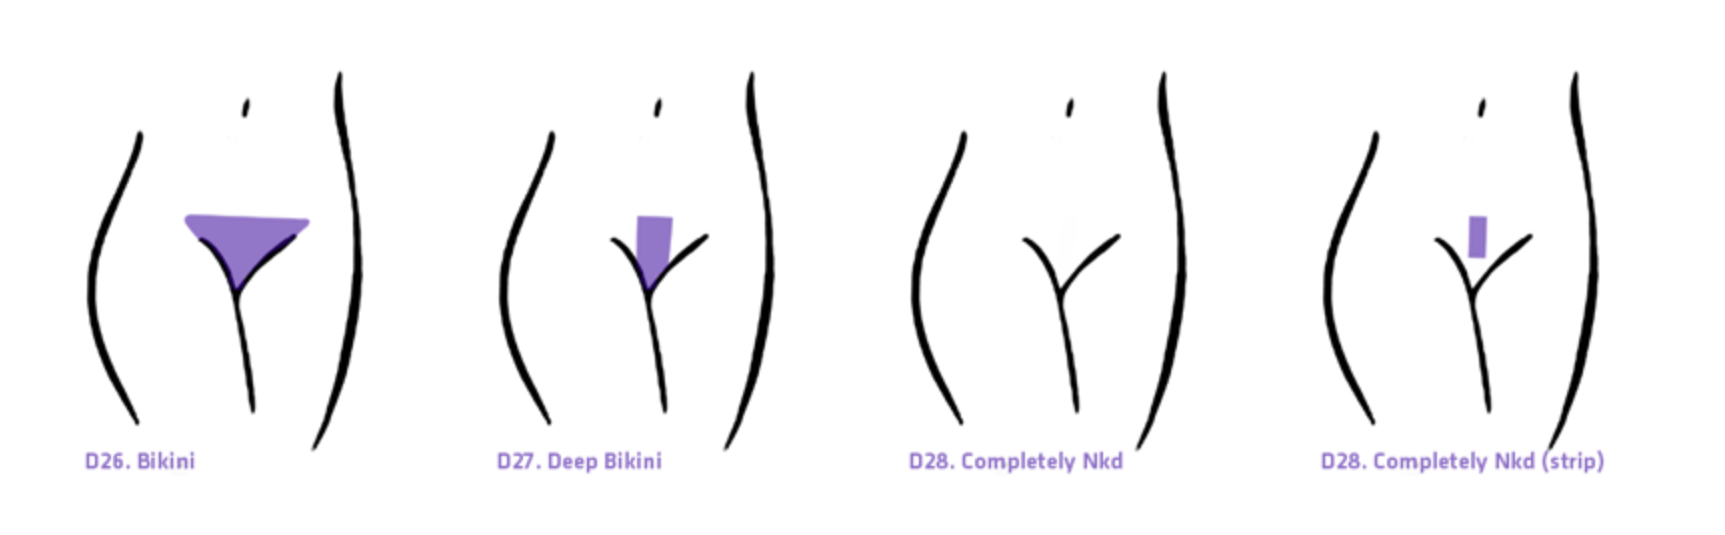 Difference in bikini waxes